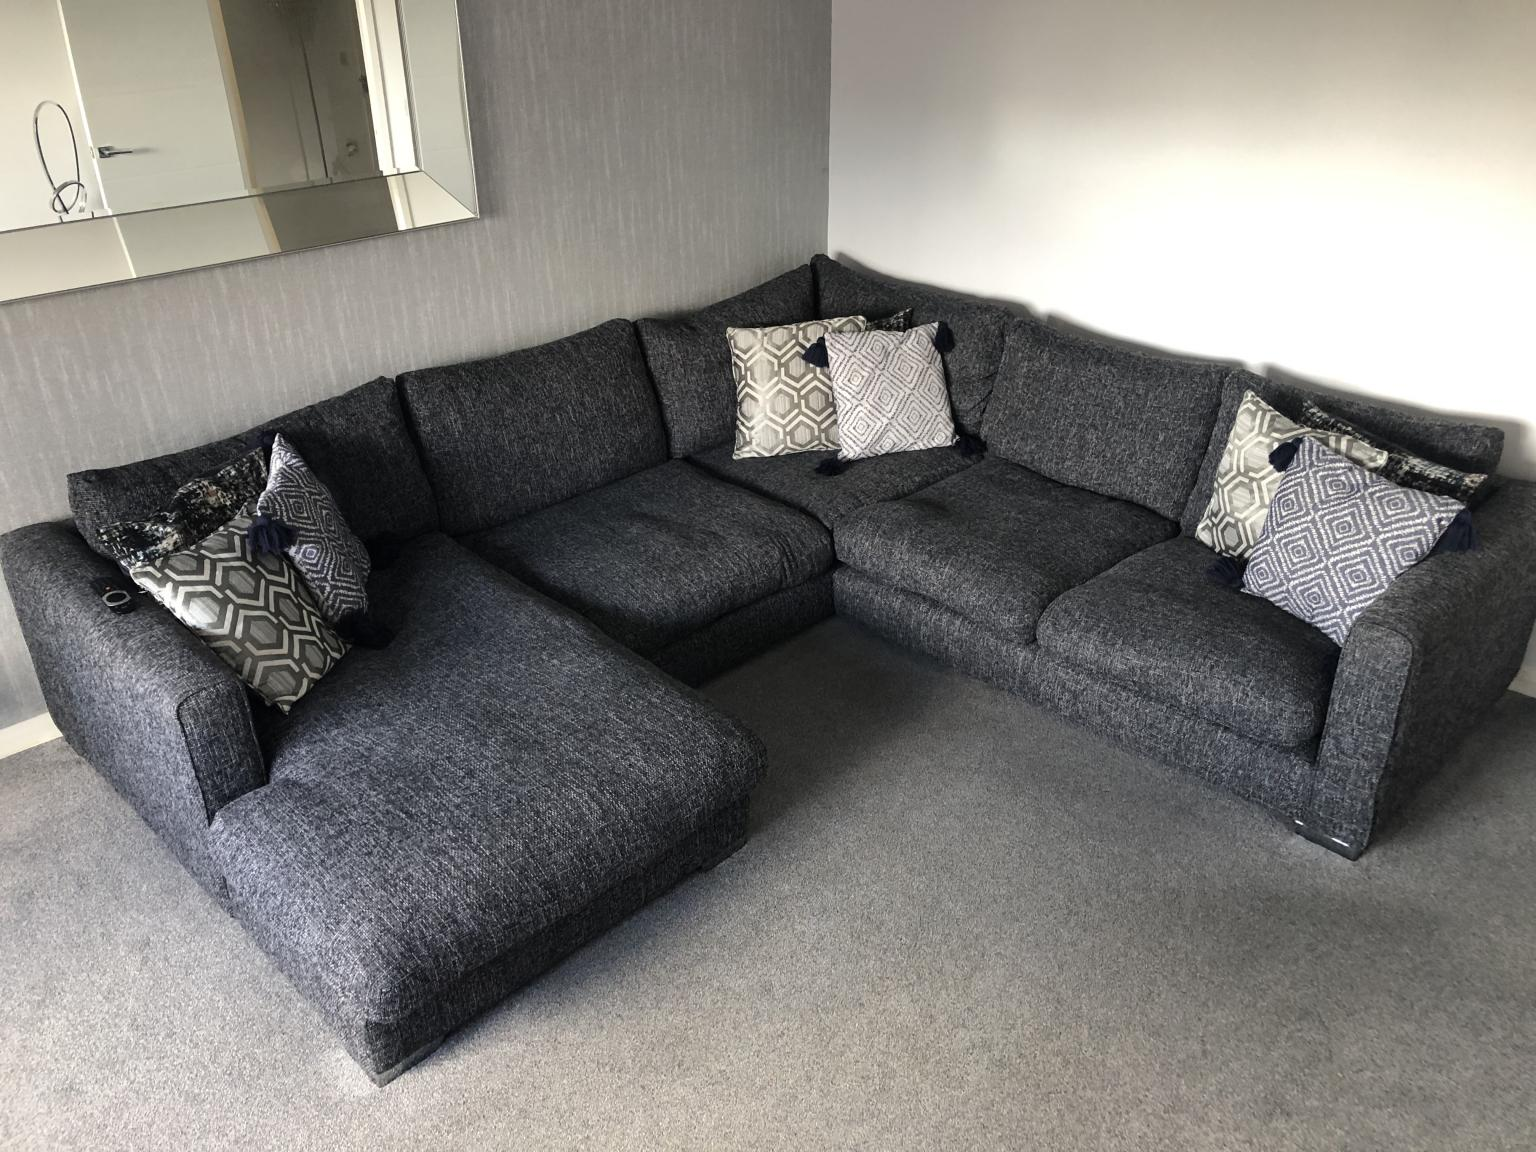 Sofology Majestic Corner Sofa In S10 Sheffield For £500.00 For Sale   Shpock